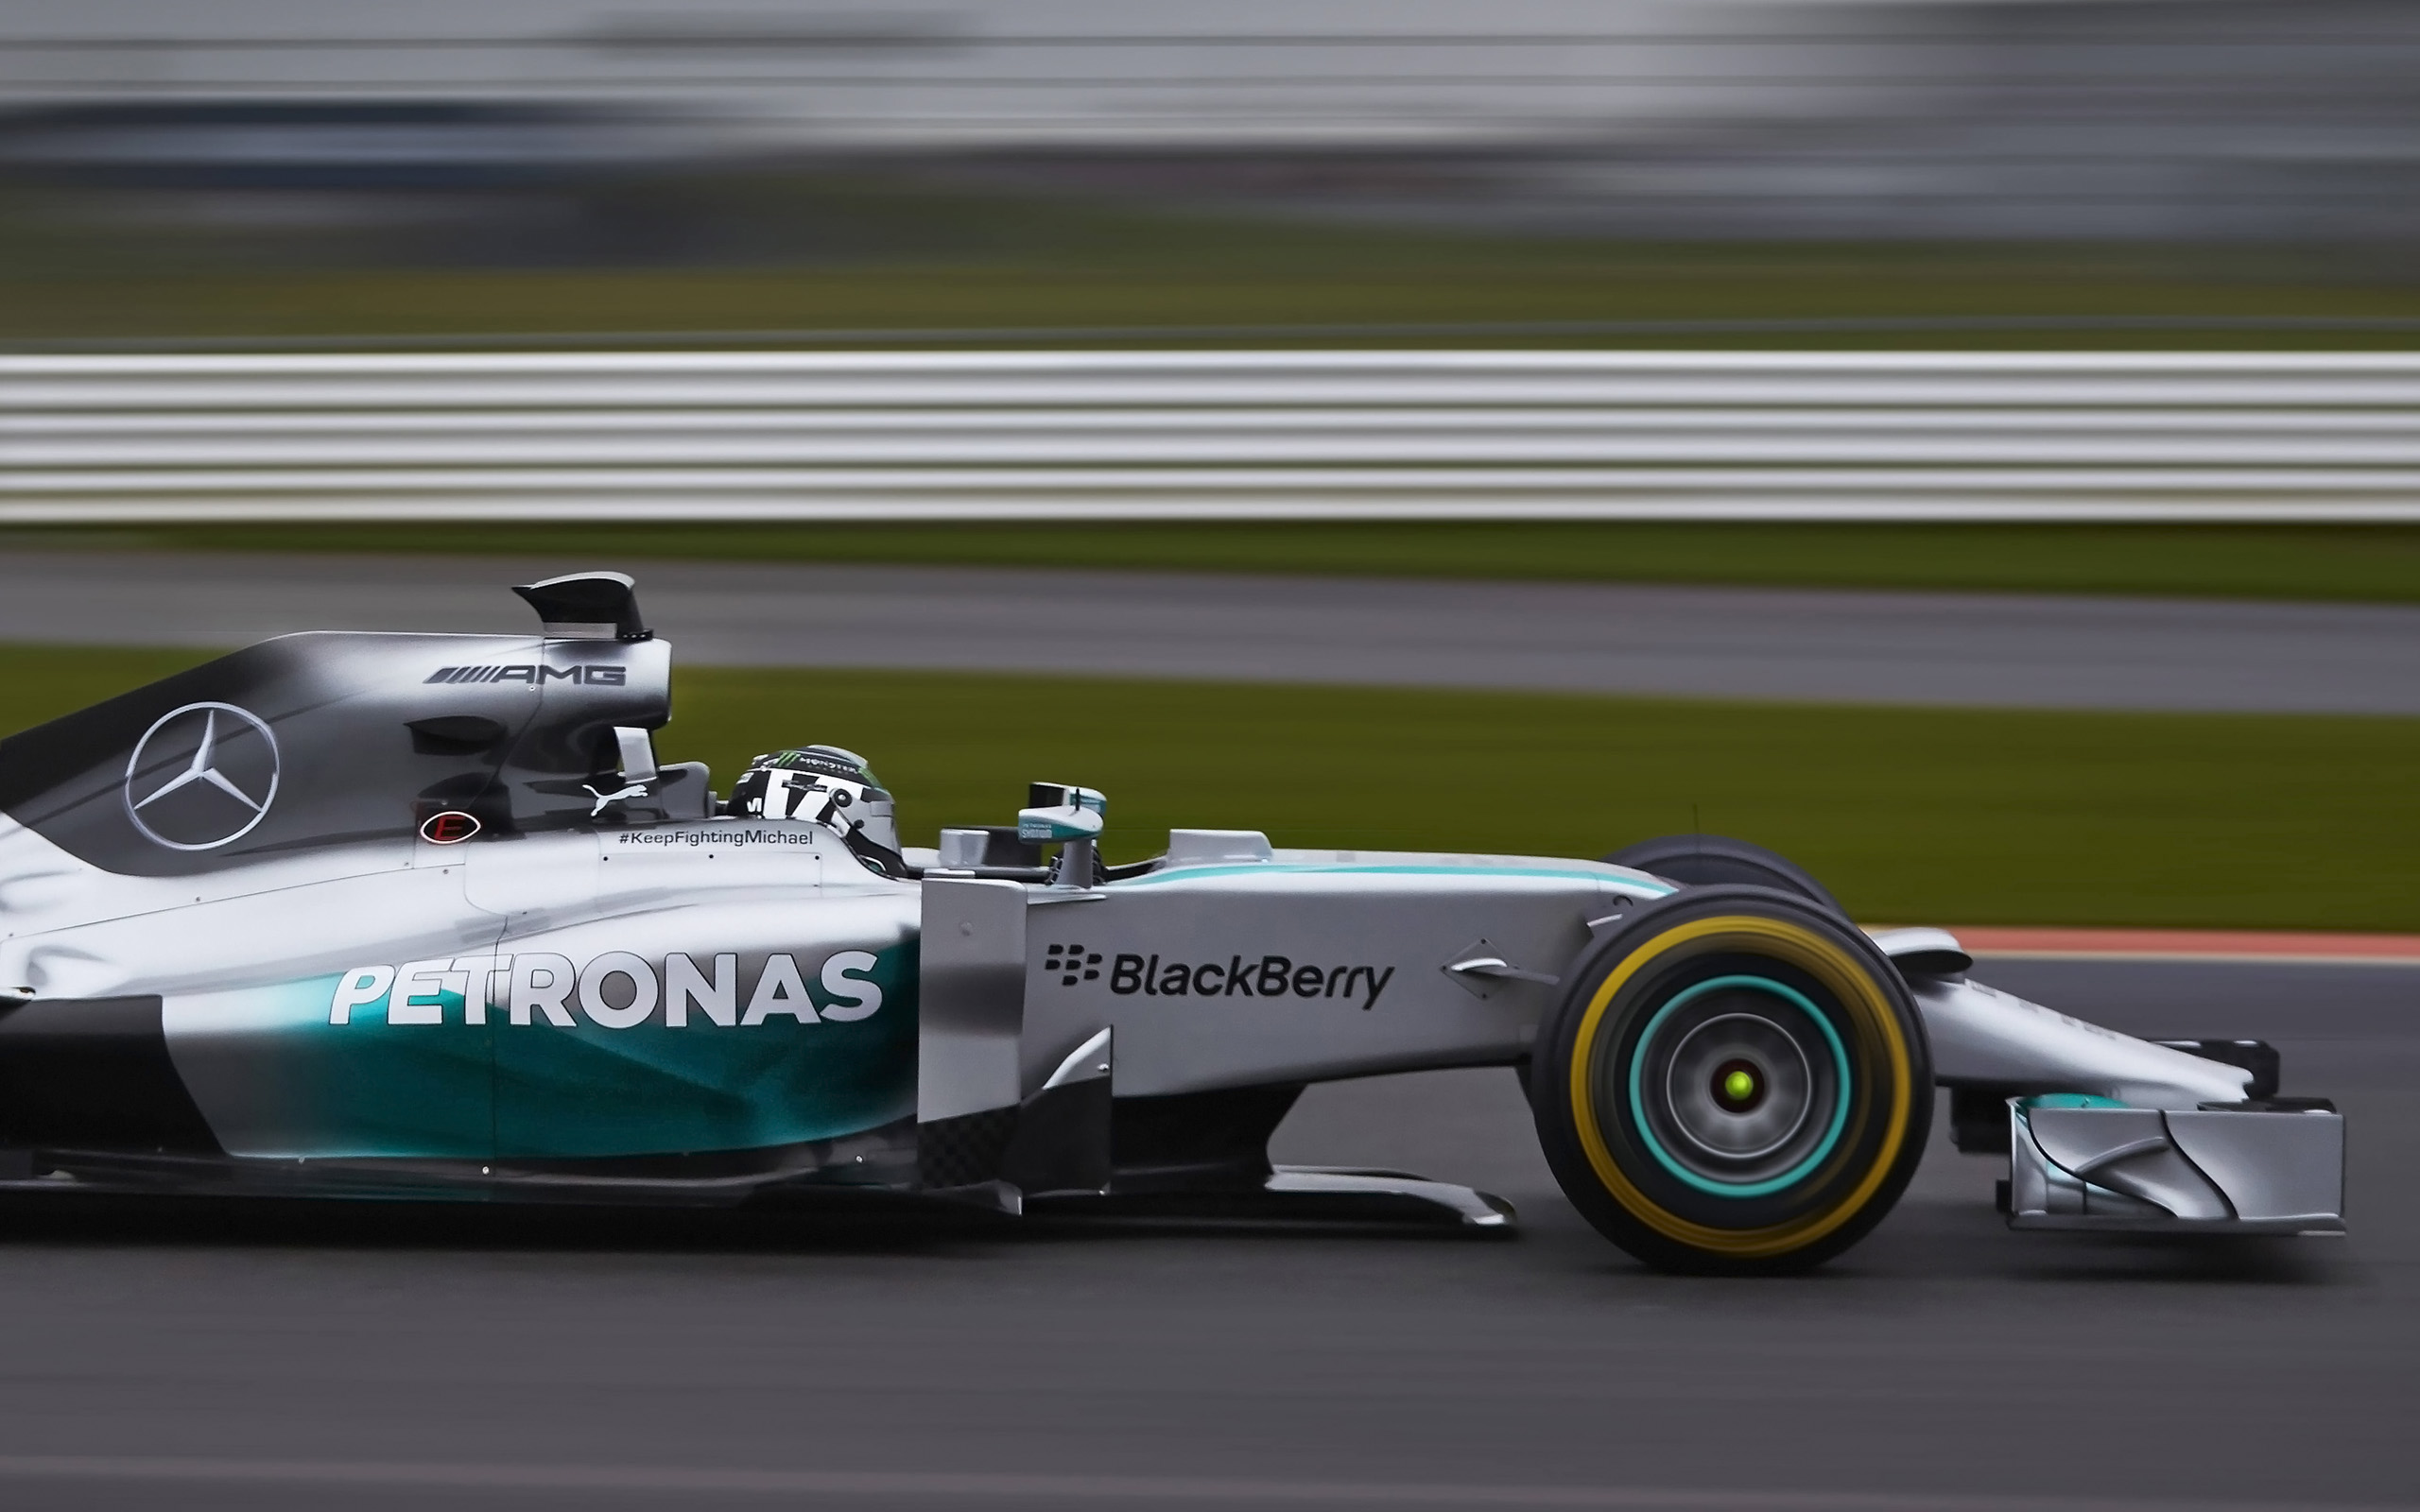 2014 Mercedes Amg Petronas F1 W05 Wallpaper Hd Car Wallpapers Id